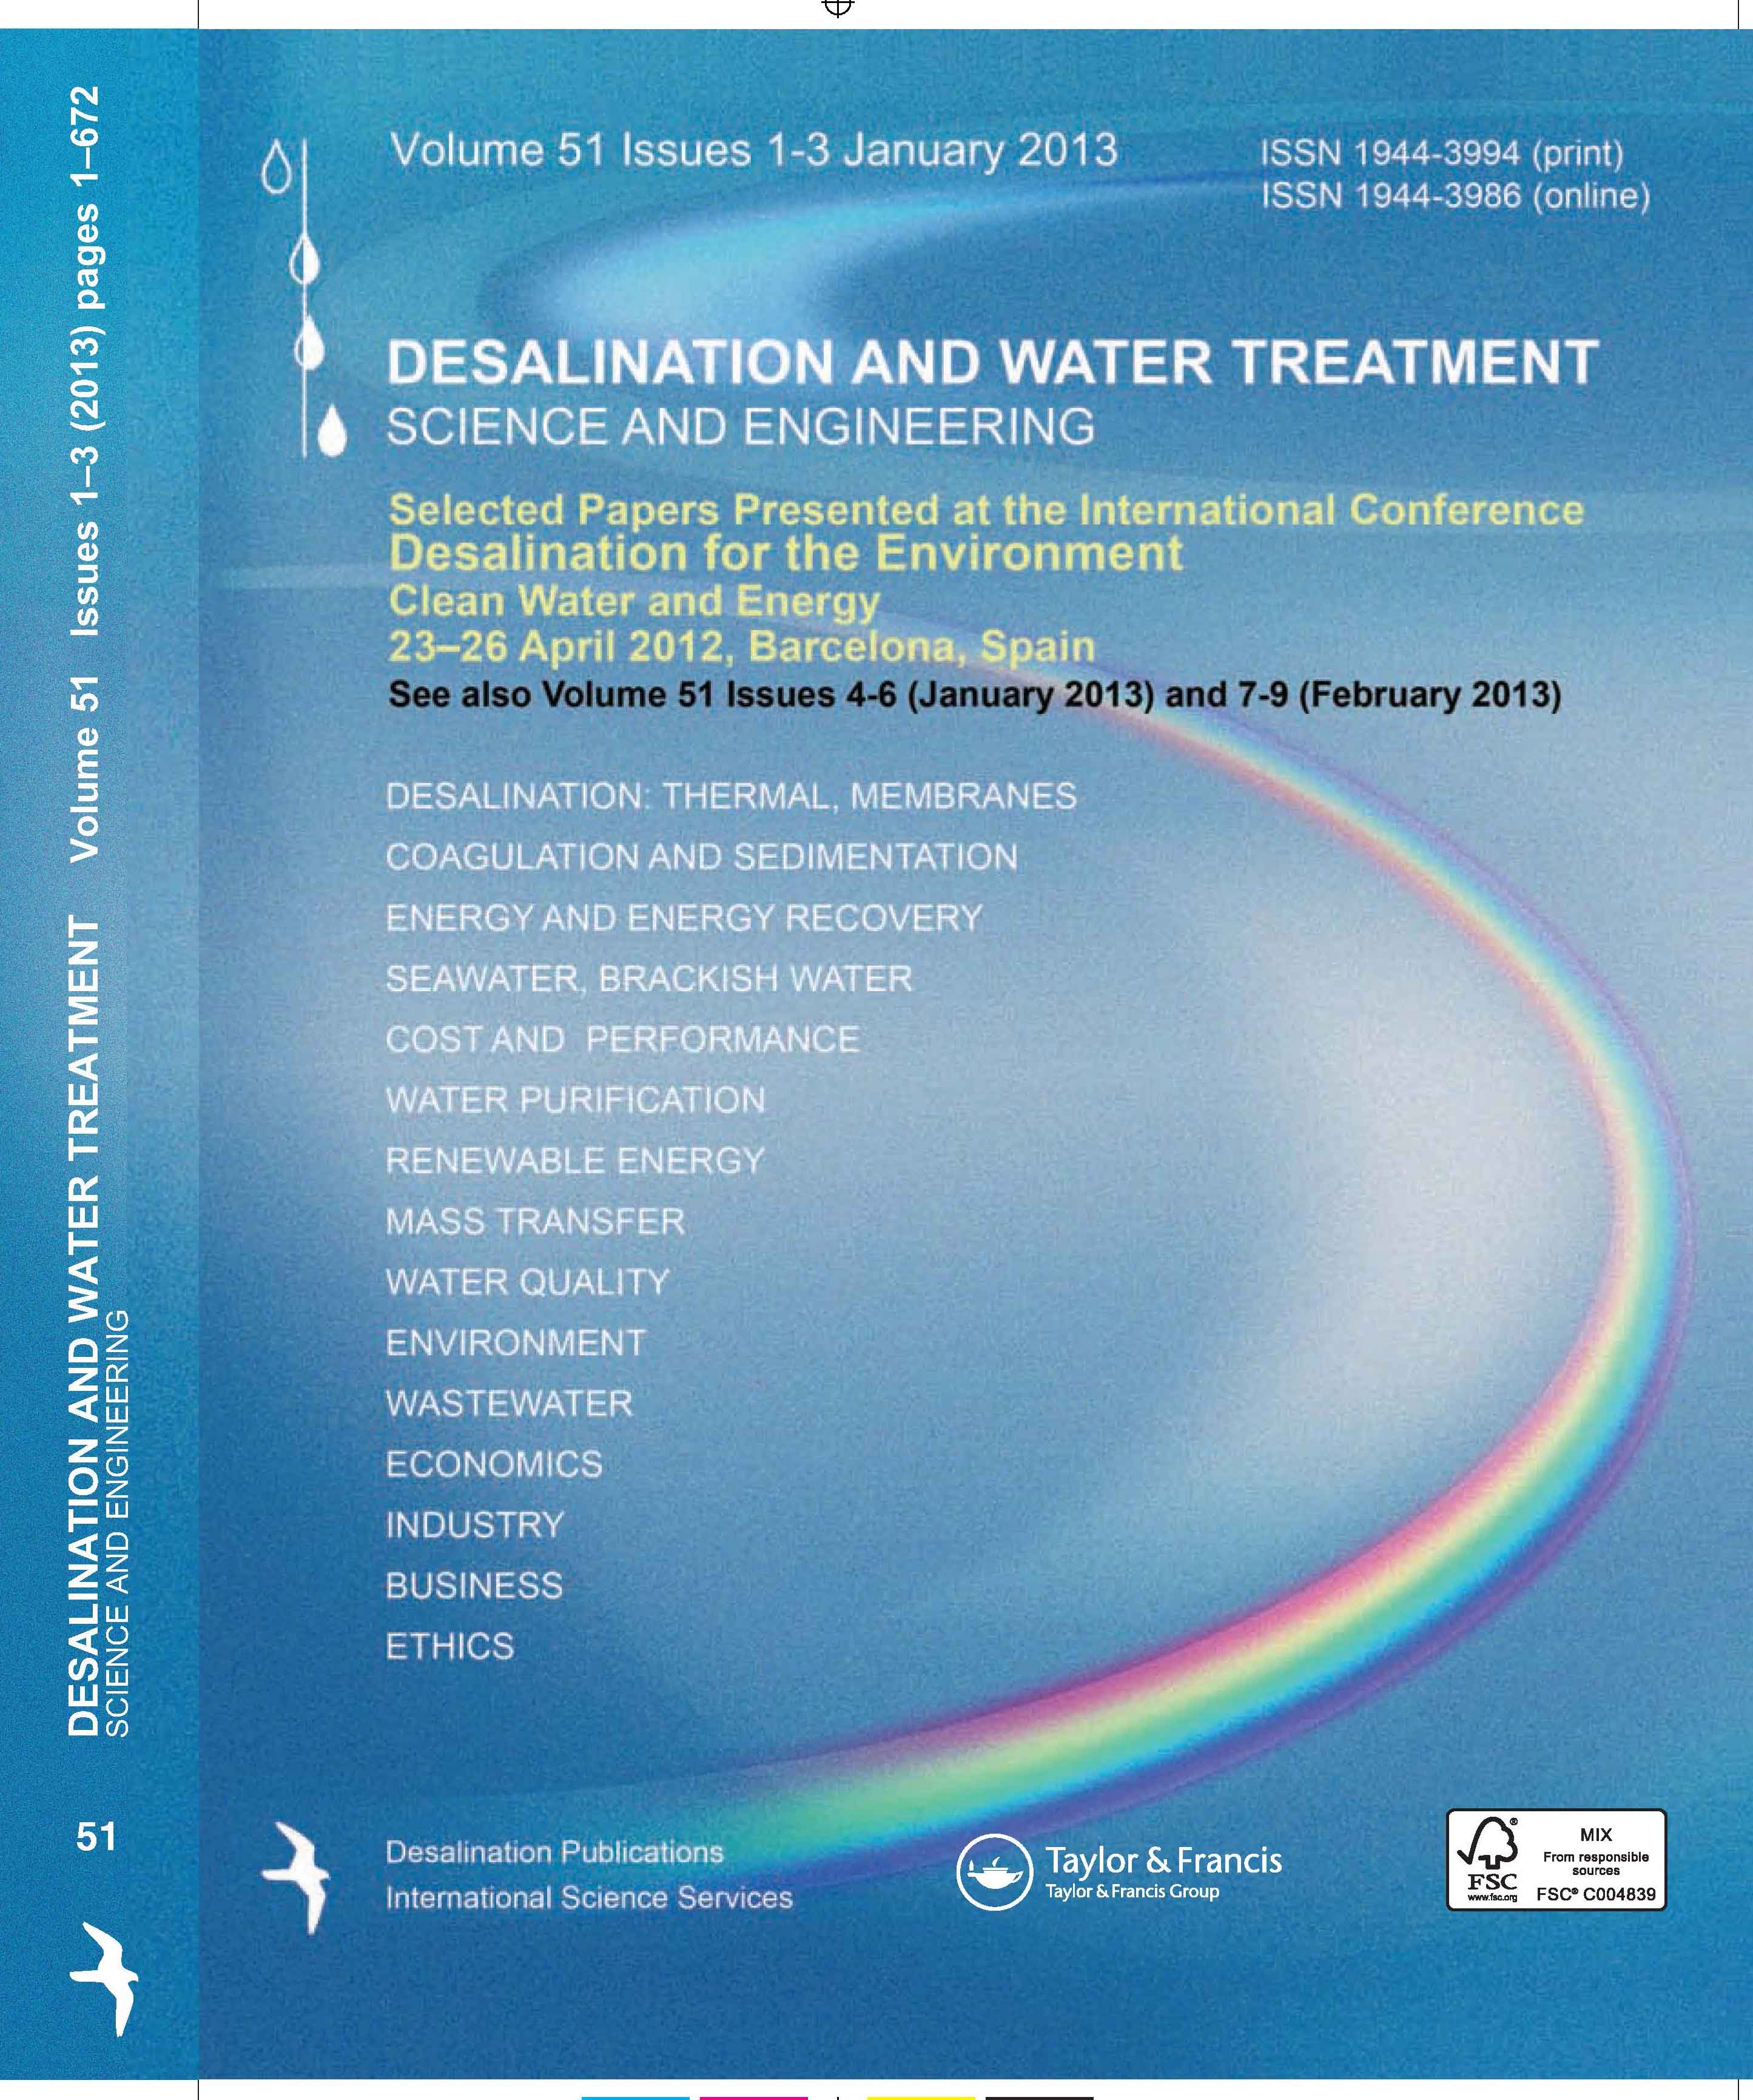 water desalination cost literature review and As water resources are rapidly being exhausted, more and more interest is paid to the desalination of seawater and brackish water concentrations.